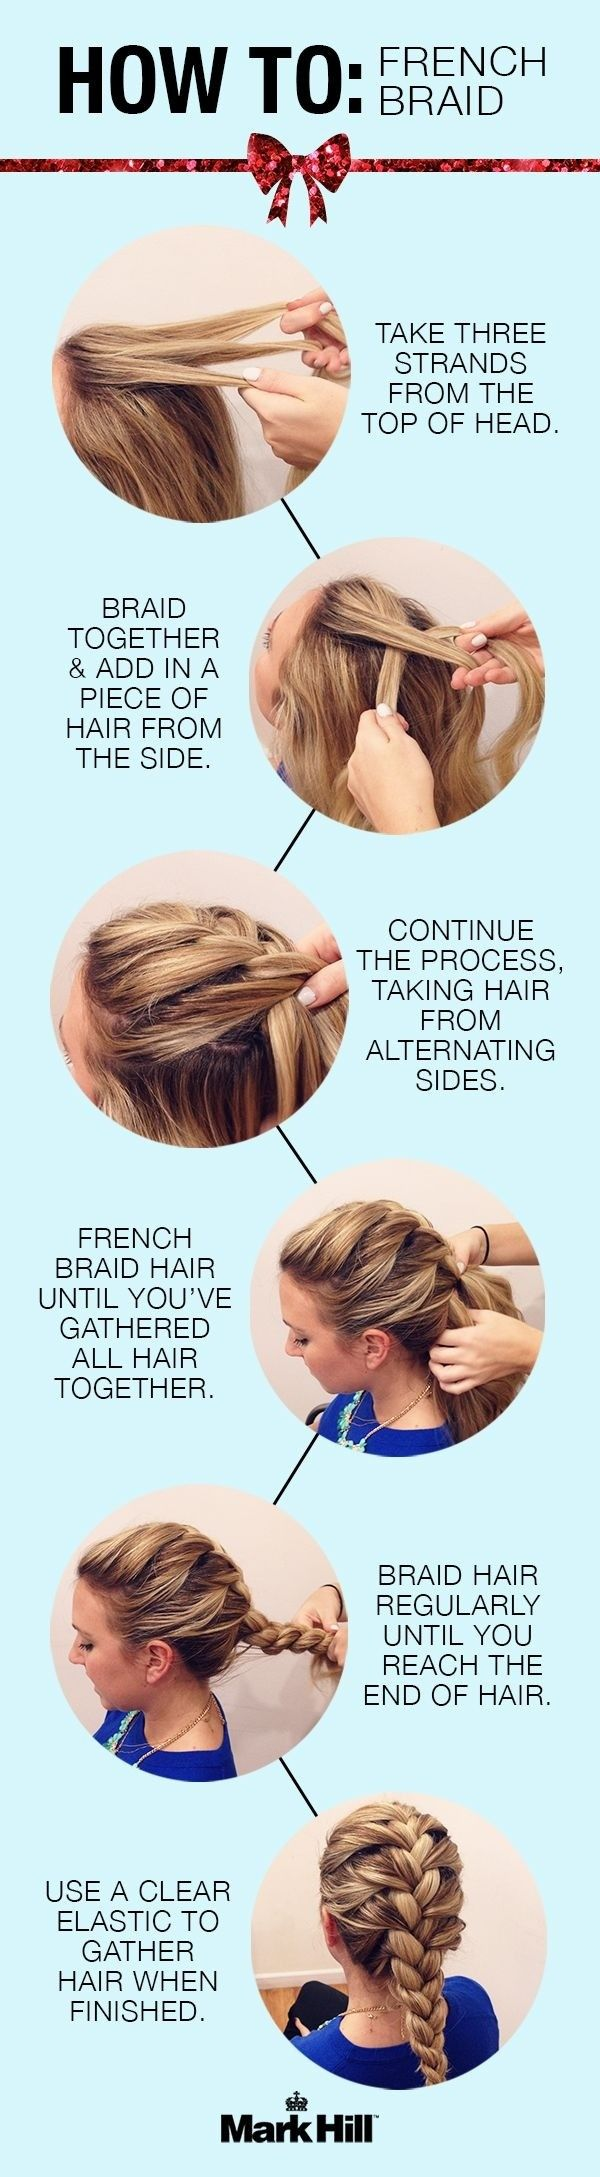 10 French Braids Hairstyles Tutorials: Everyday Hair Styles | PoPular Haircuts